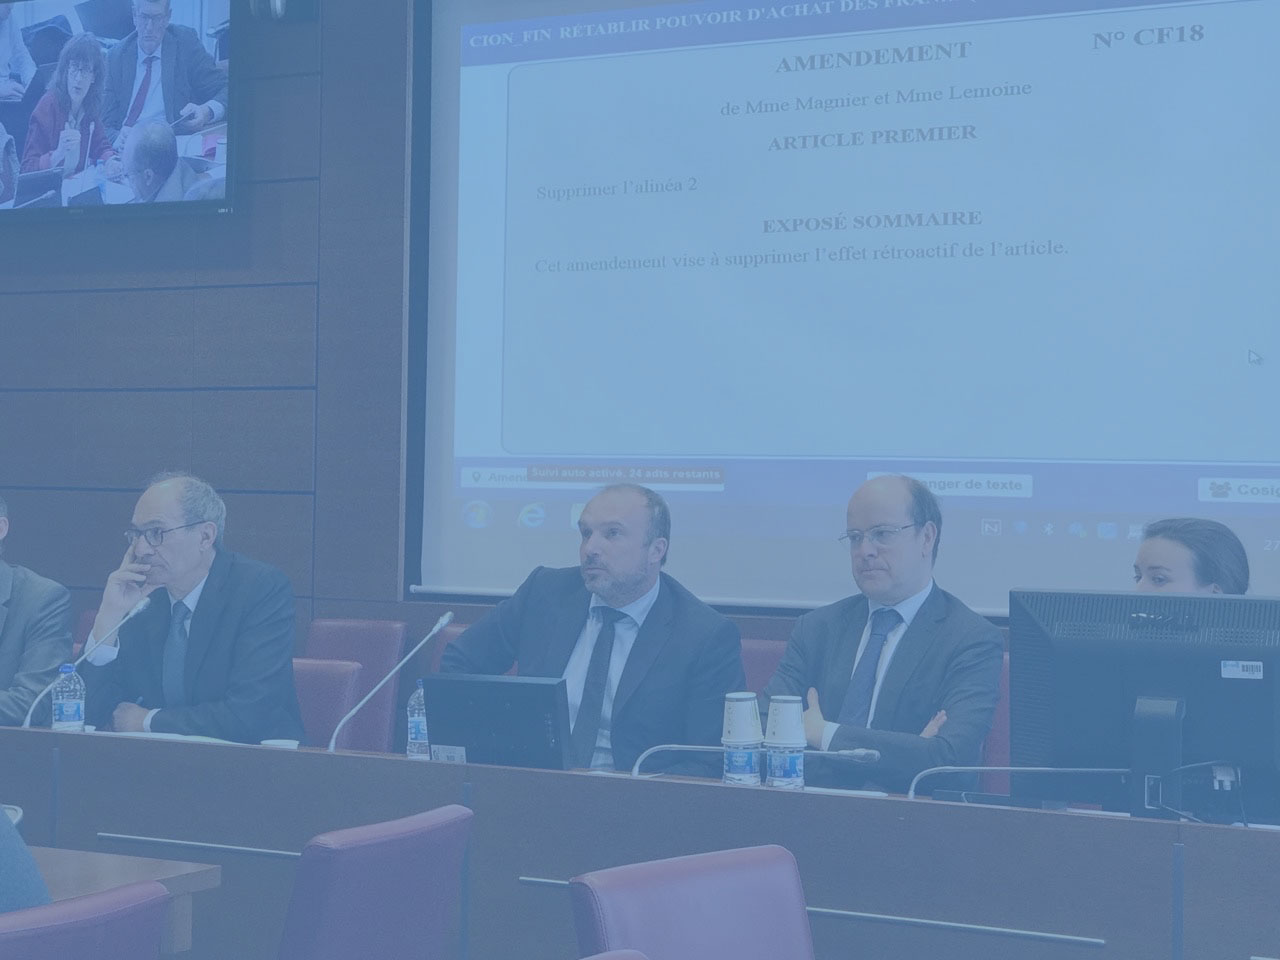 CommissionFinances-27.03.2019.jpg